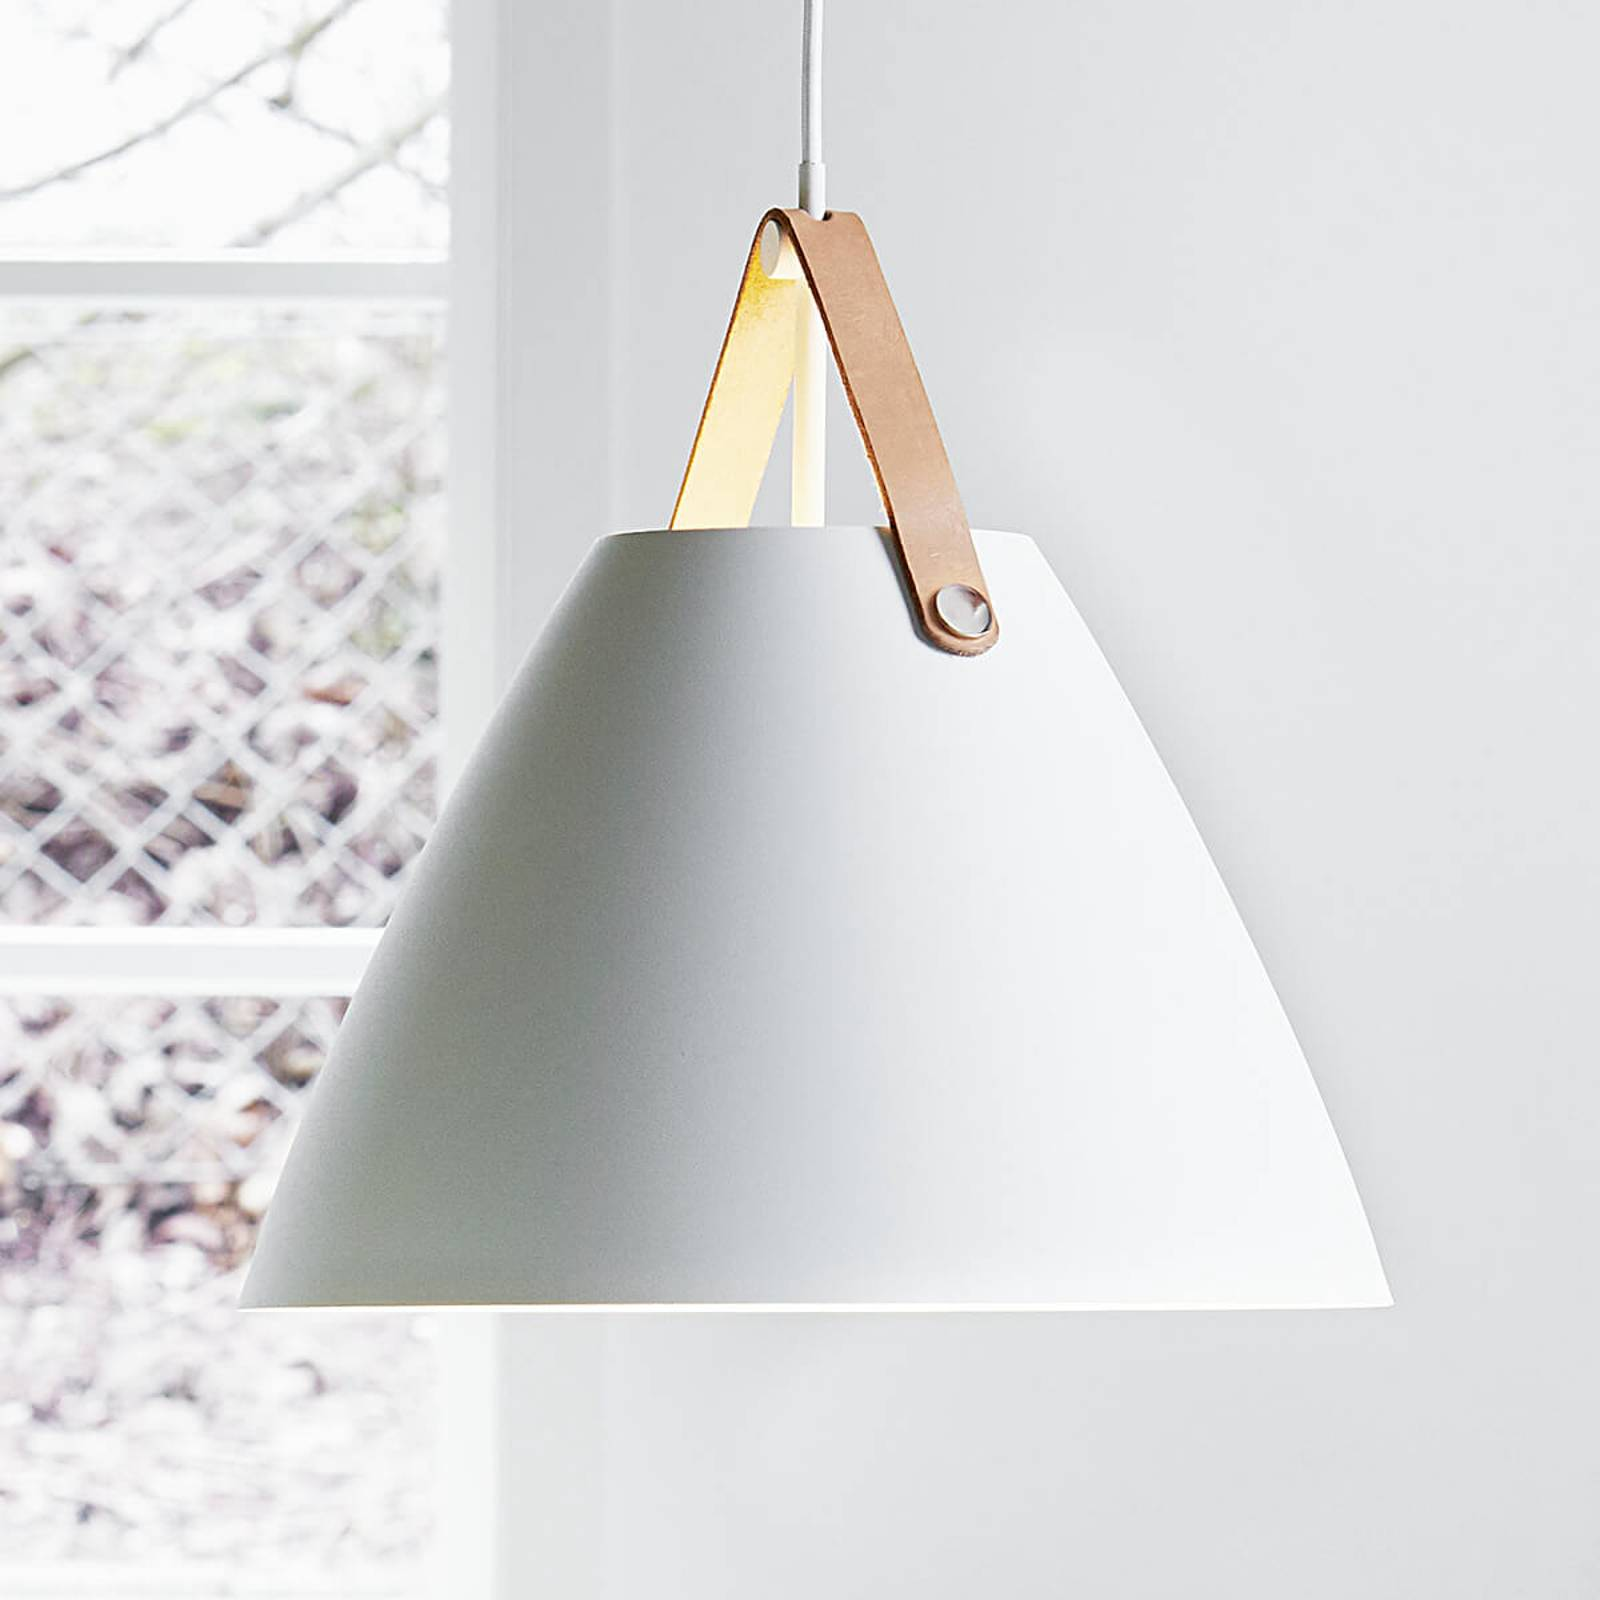 Strap 36 pendant lamp with leather hanger from Nordlux